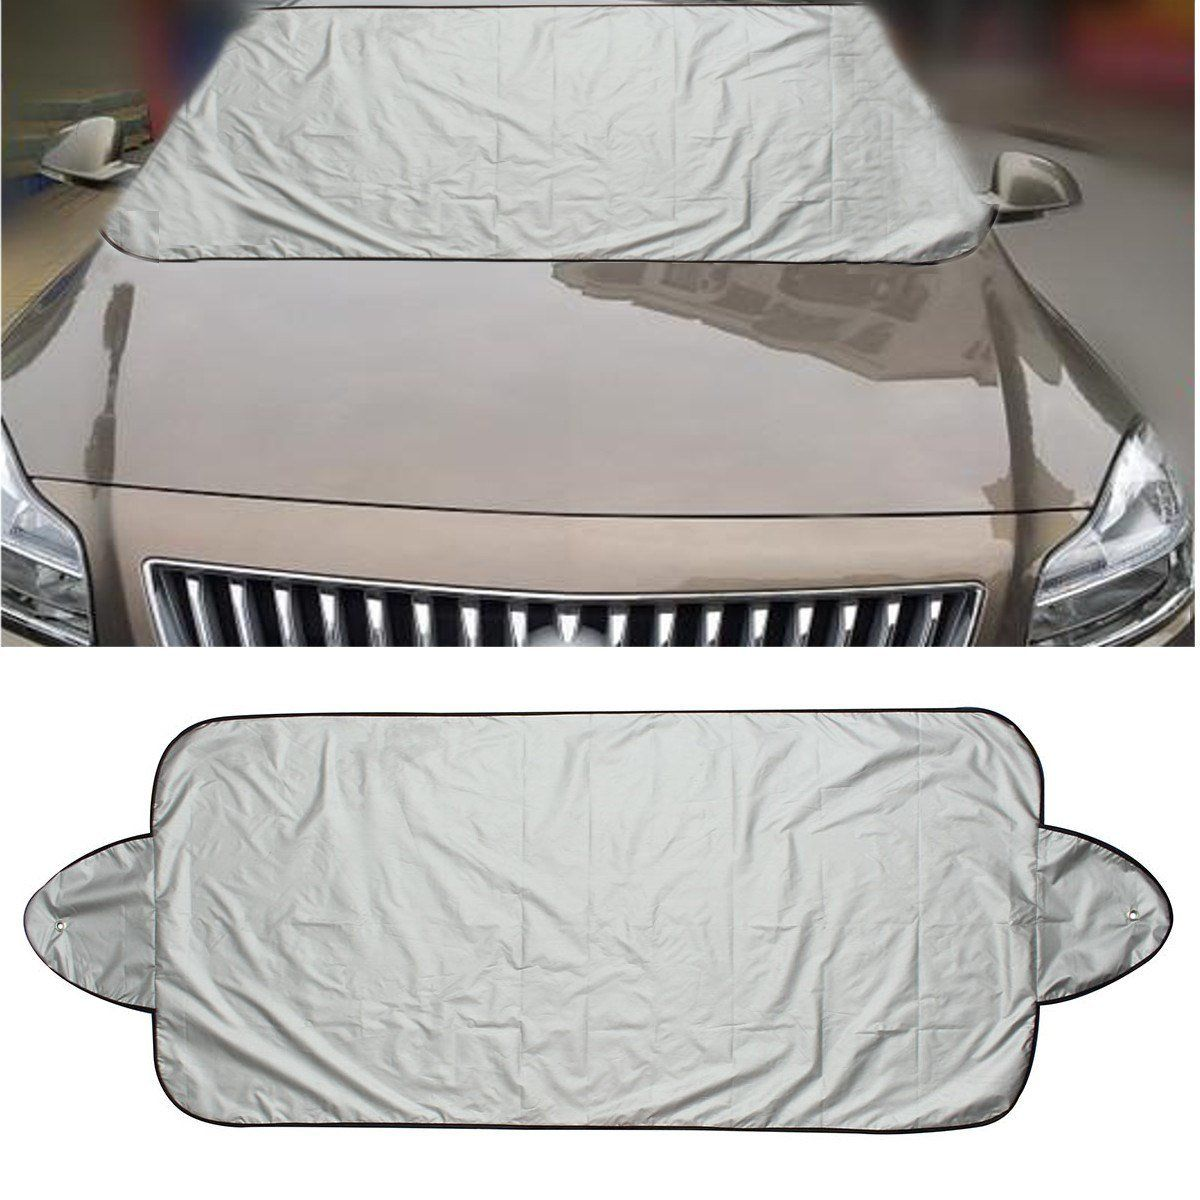 Car Windshield Visor Cover UV Protect Anti Ice Snow Frost Shield Dust Protection Sun Shade for Front Car Windshield-Black